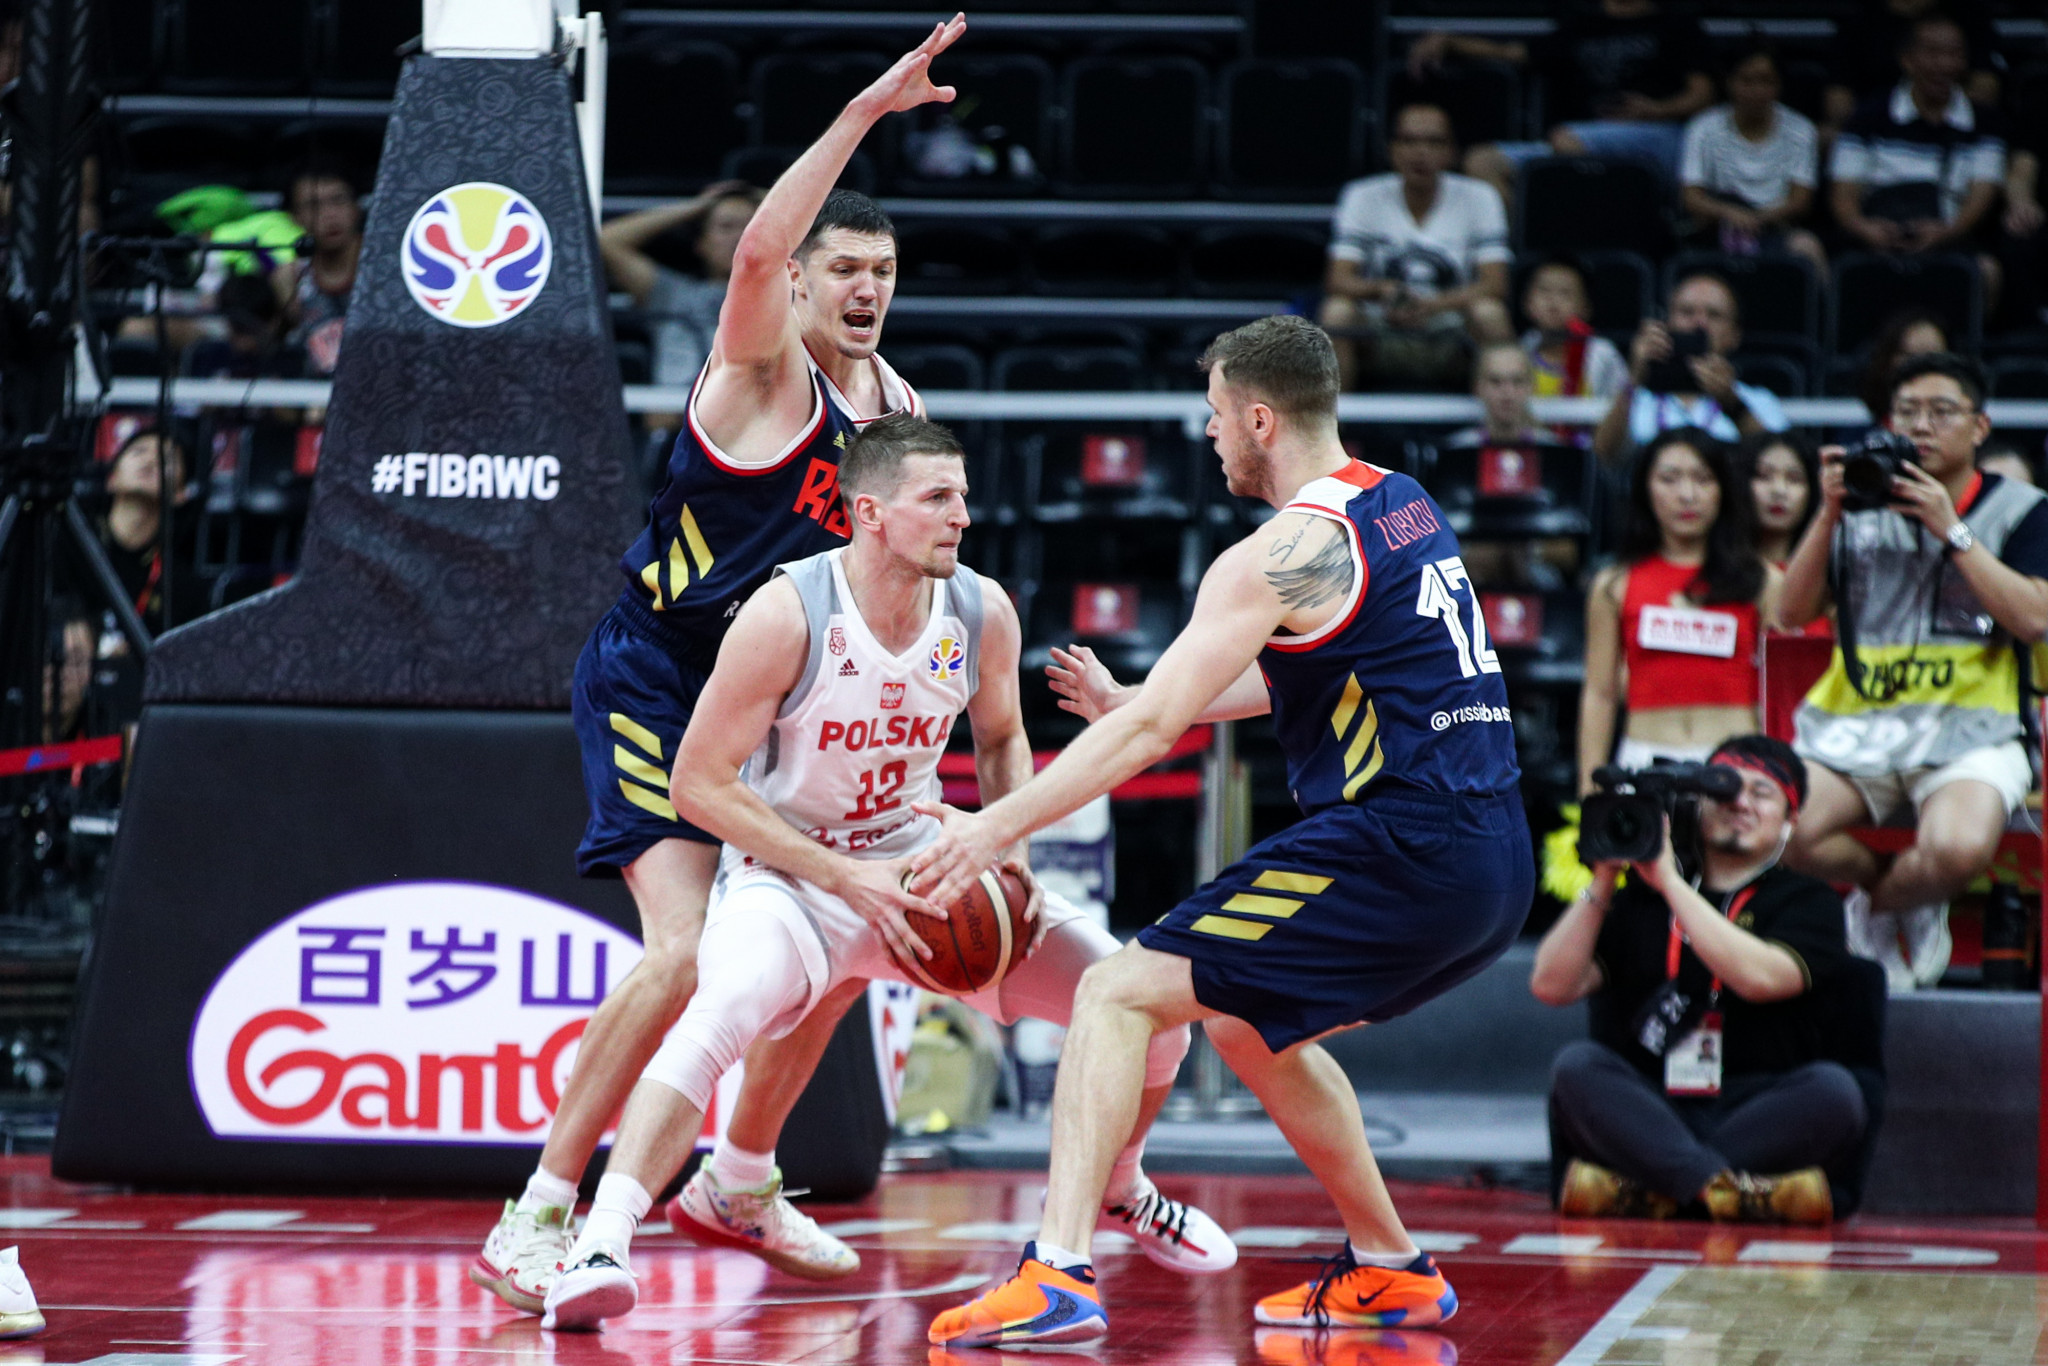 Poland book quarter-final place to continue fairytale run at FIBA World Cup